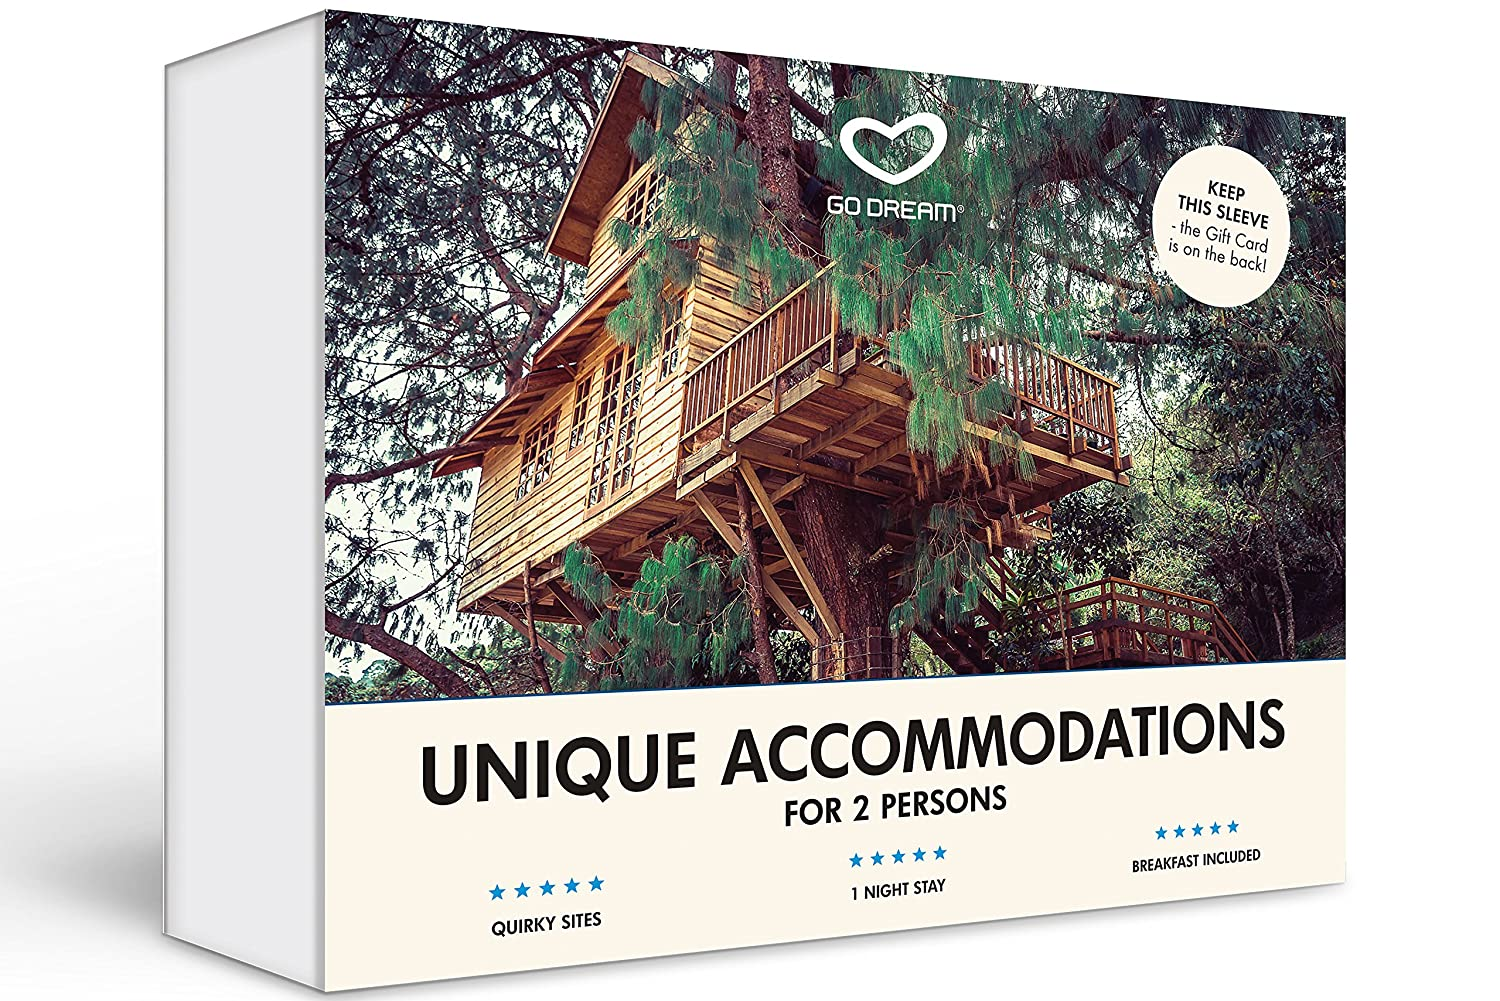 Unusual Hotel Experience Gift Card Nationwide - GO DREAM - Sent in a Gift Package